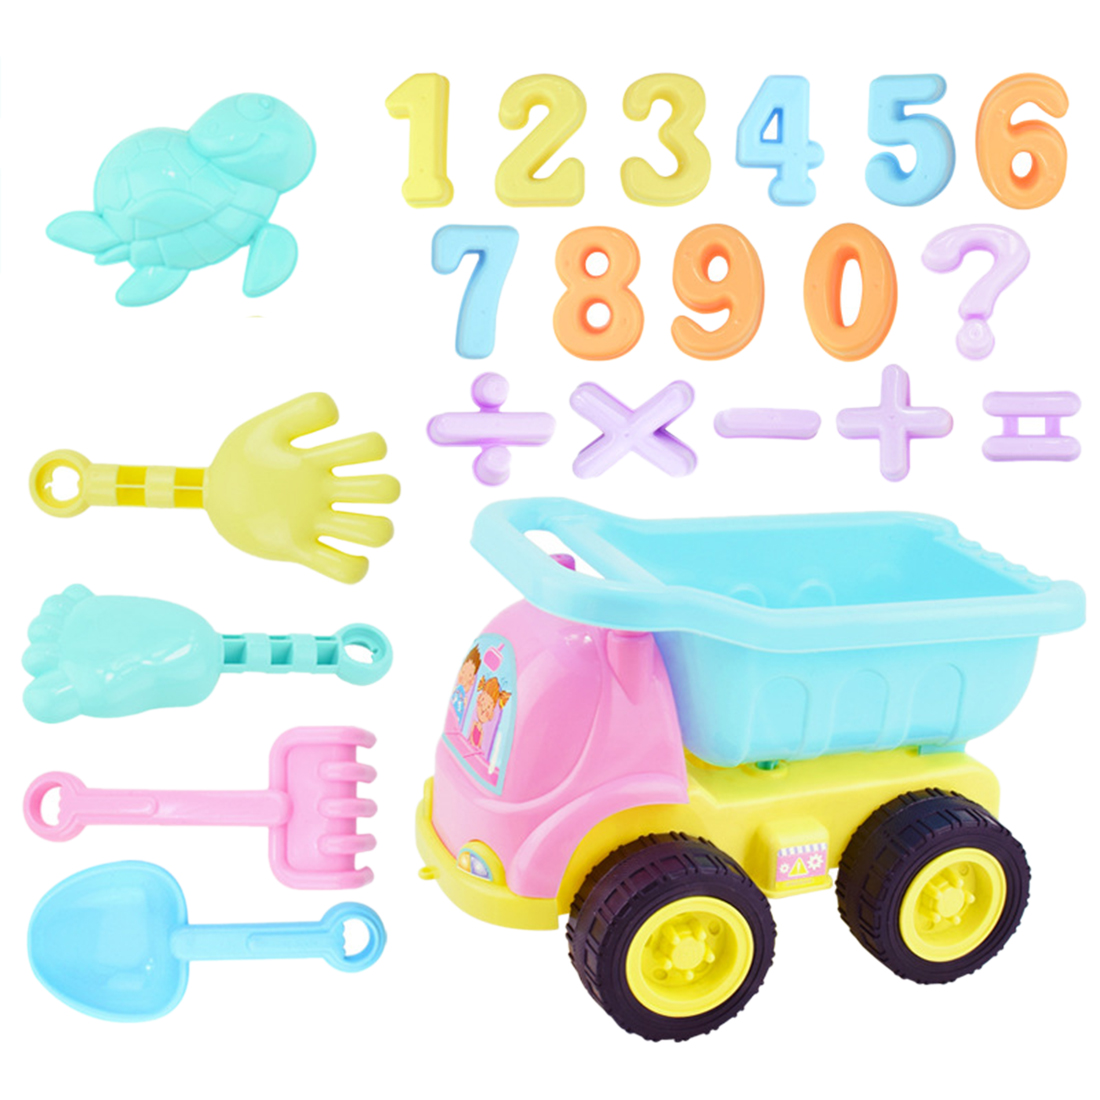 22/27/15Pc Plastic Soft Children Outdoor Beach Sand Toy Dump Truck Bath Playset Sand Tool Model Water Game Sand Playing For Kids